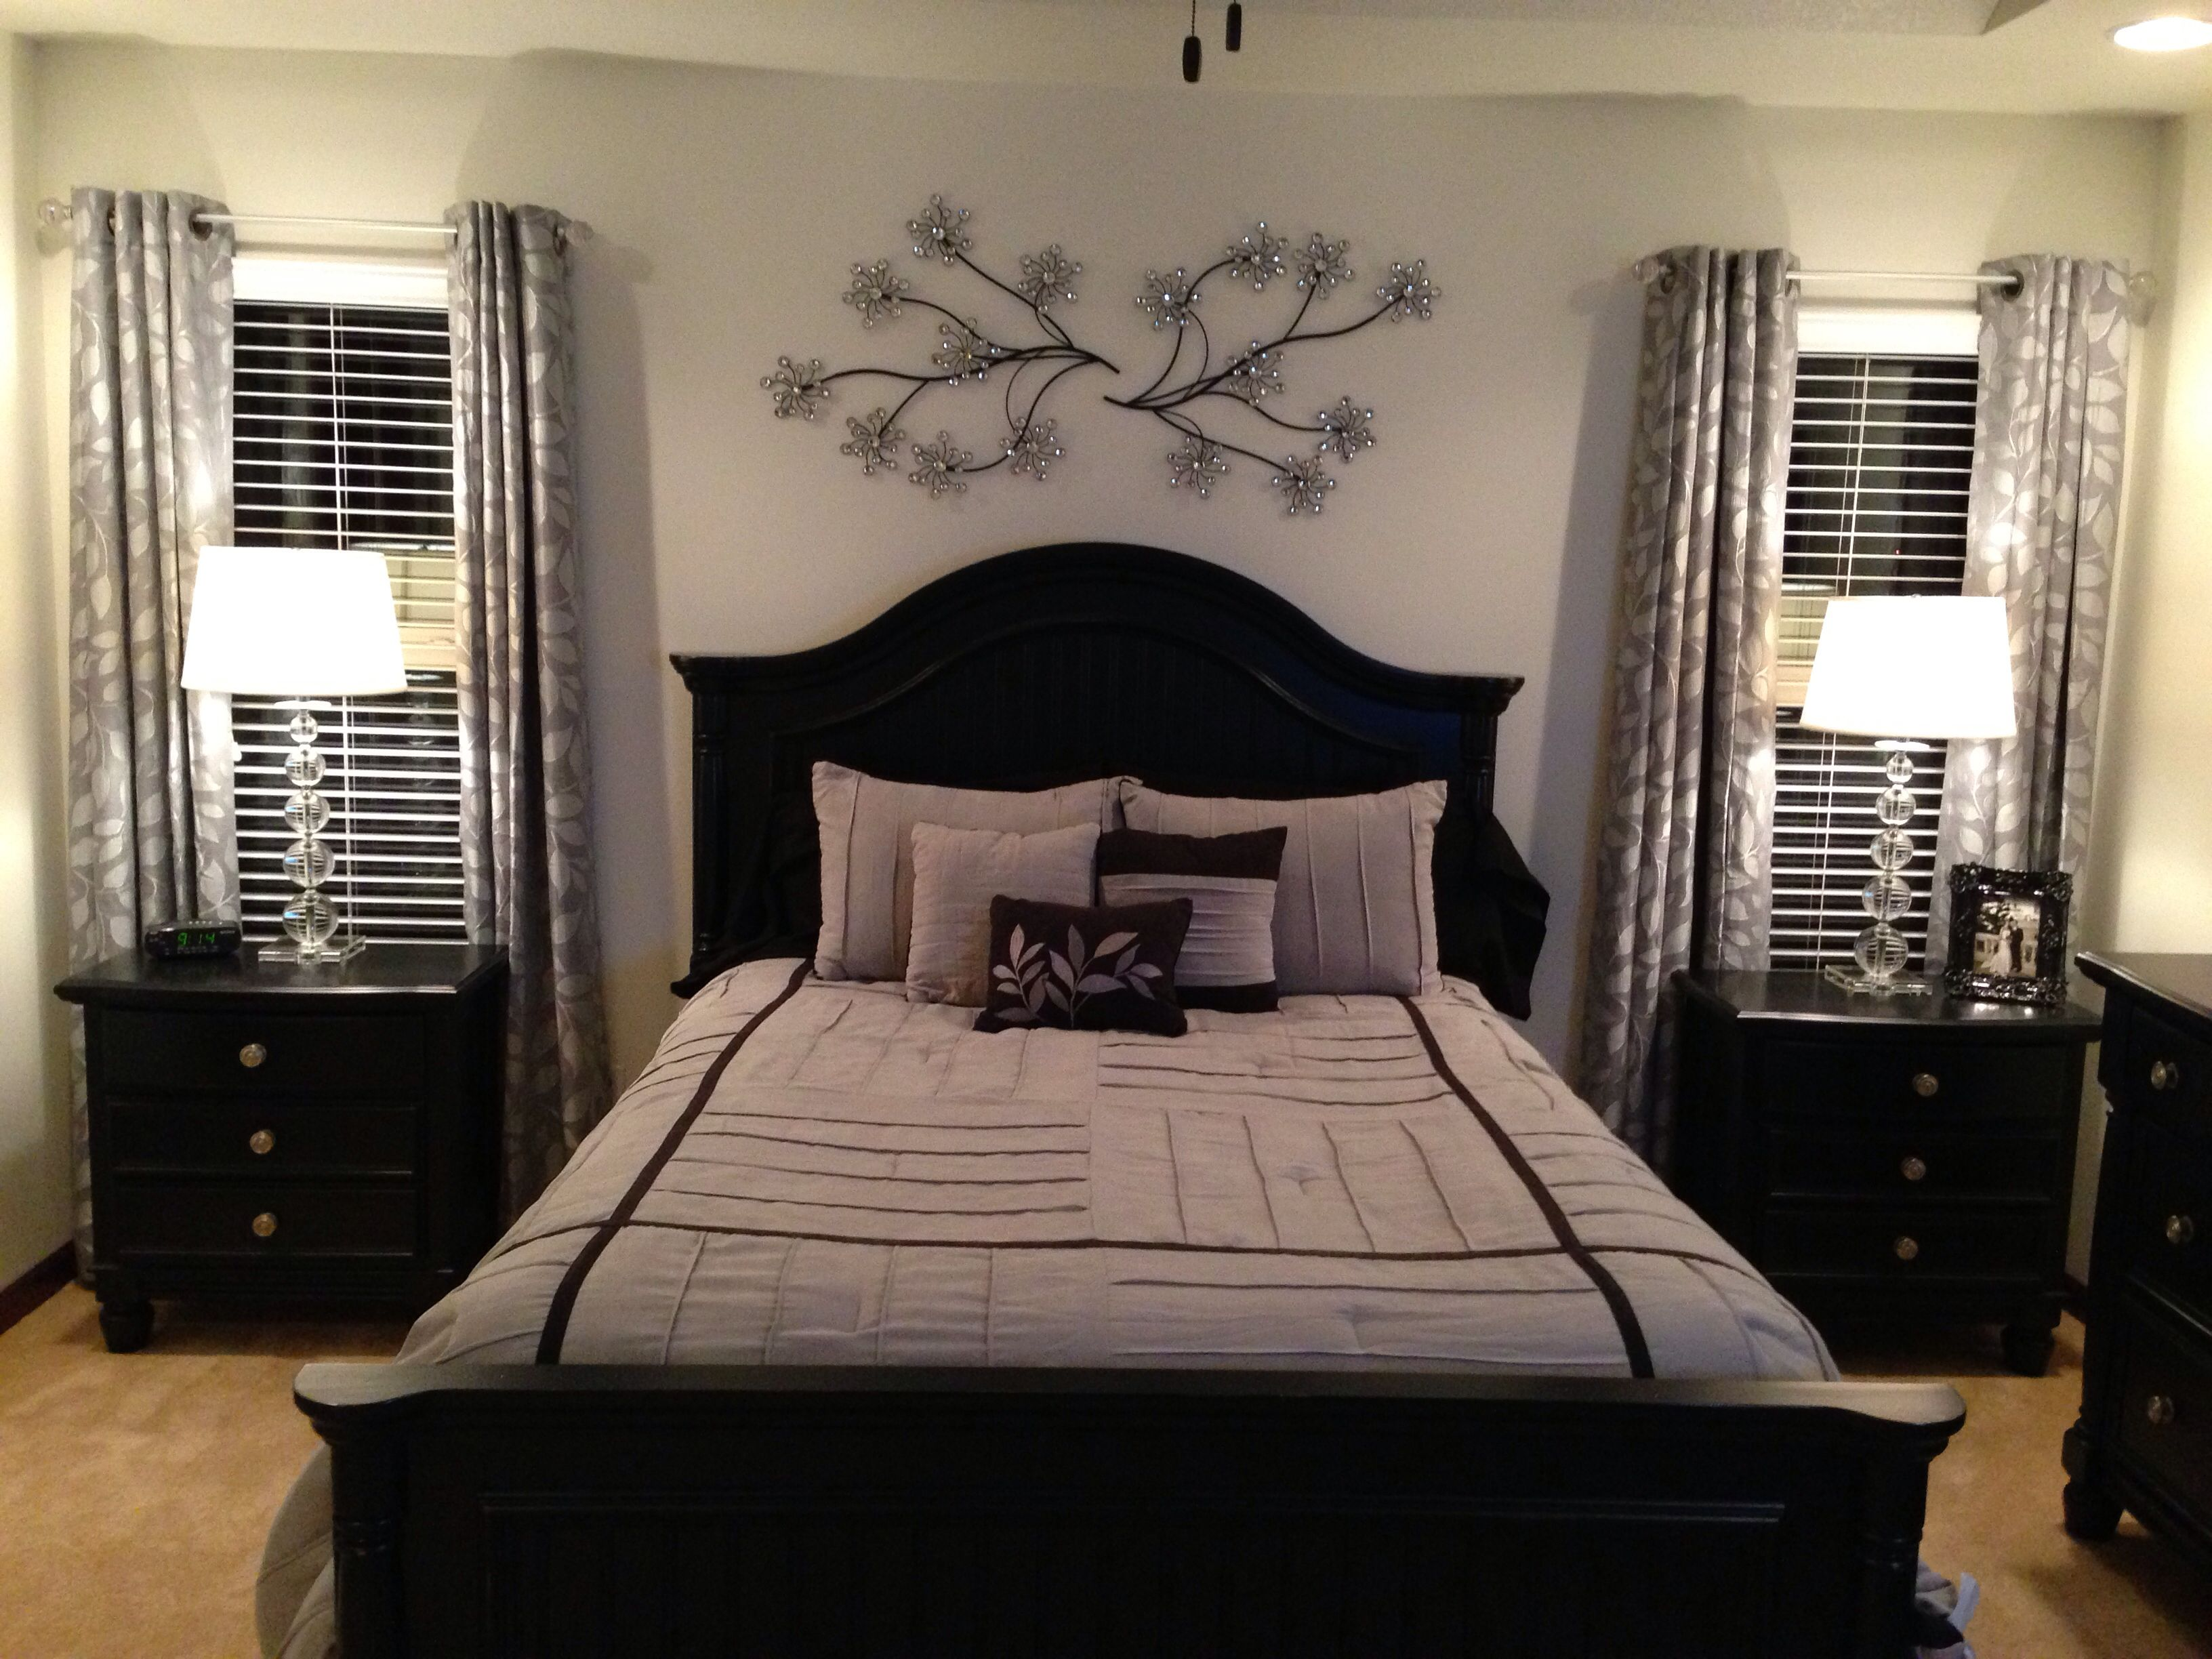 Burks Master Bedroom Furniture And Curtains From Jcpenney Lamps And Wall Art From Tj Max